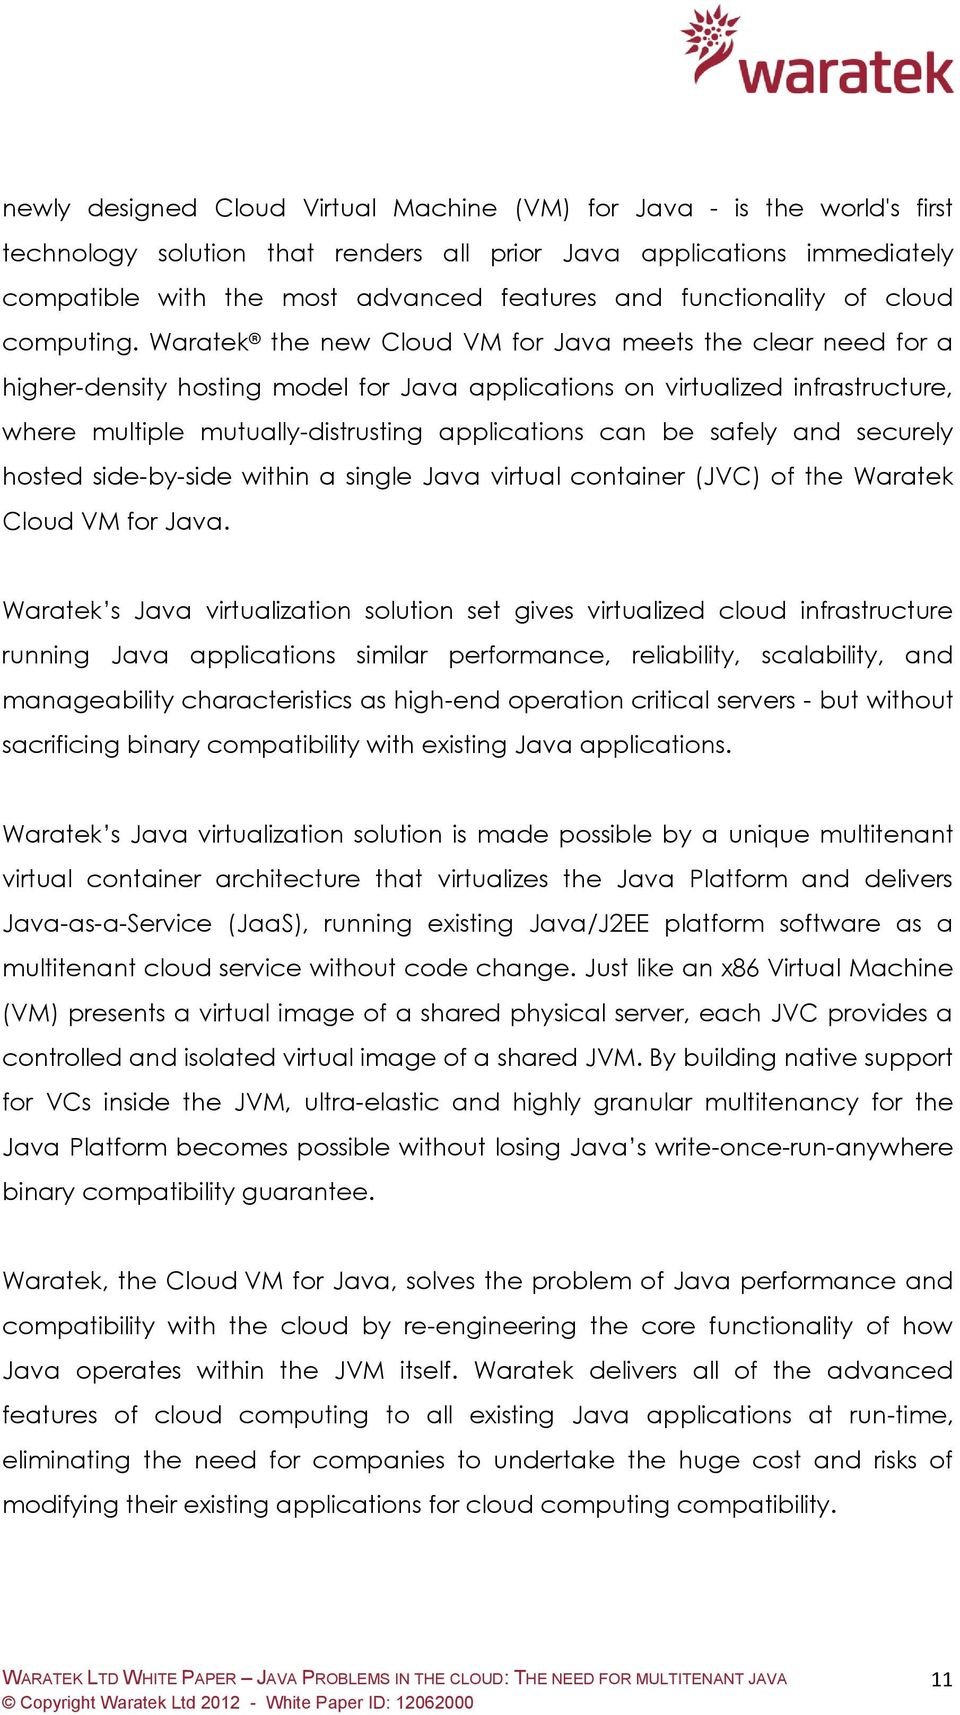 Waratek the new Cloud VM for Java meets the clear need for a higher-density hosting model for Java applications on virtualized infrastructure, where multiple mutually-distrusting applications can be